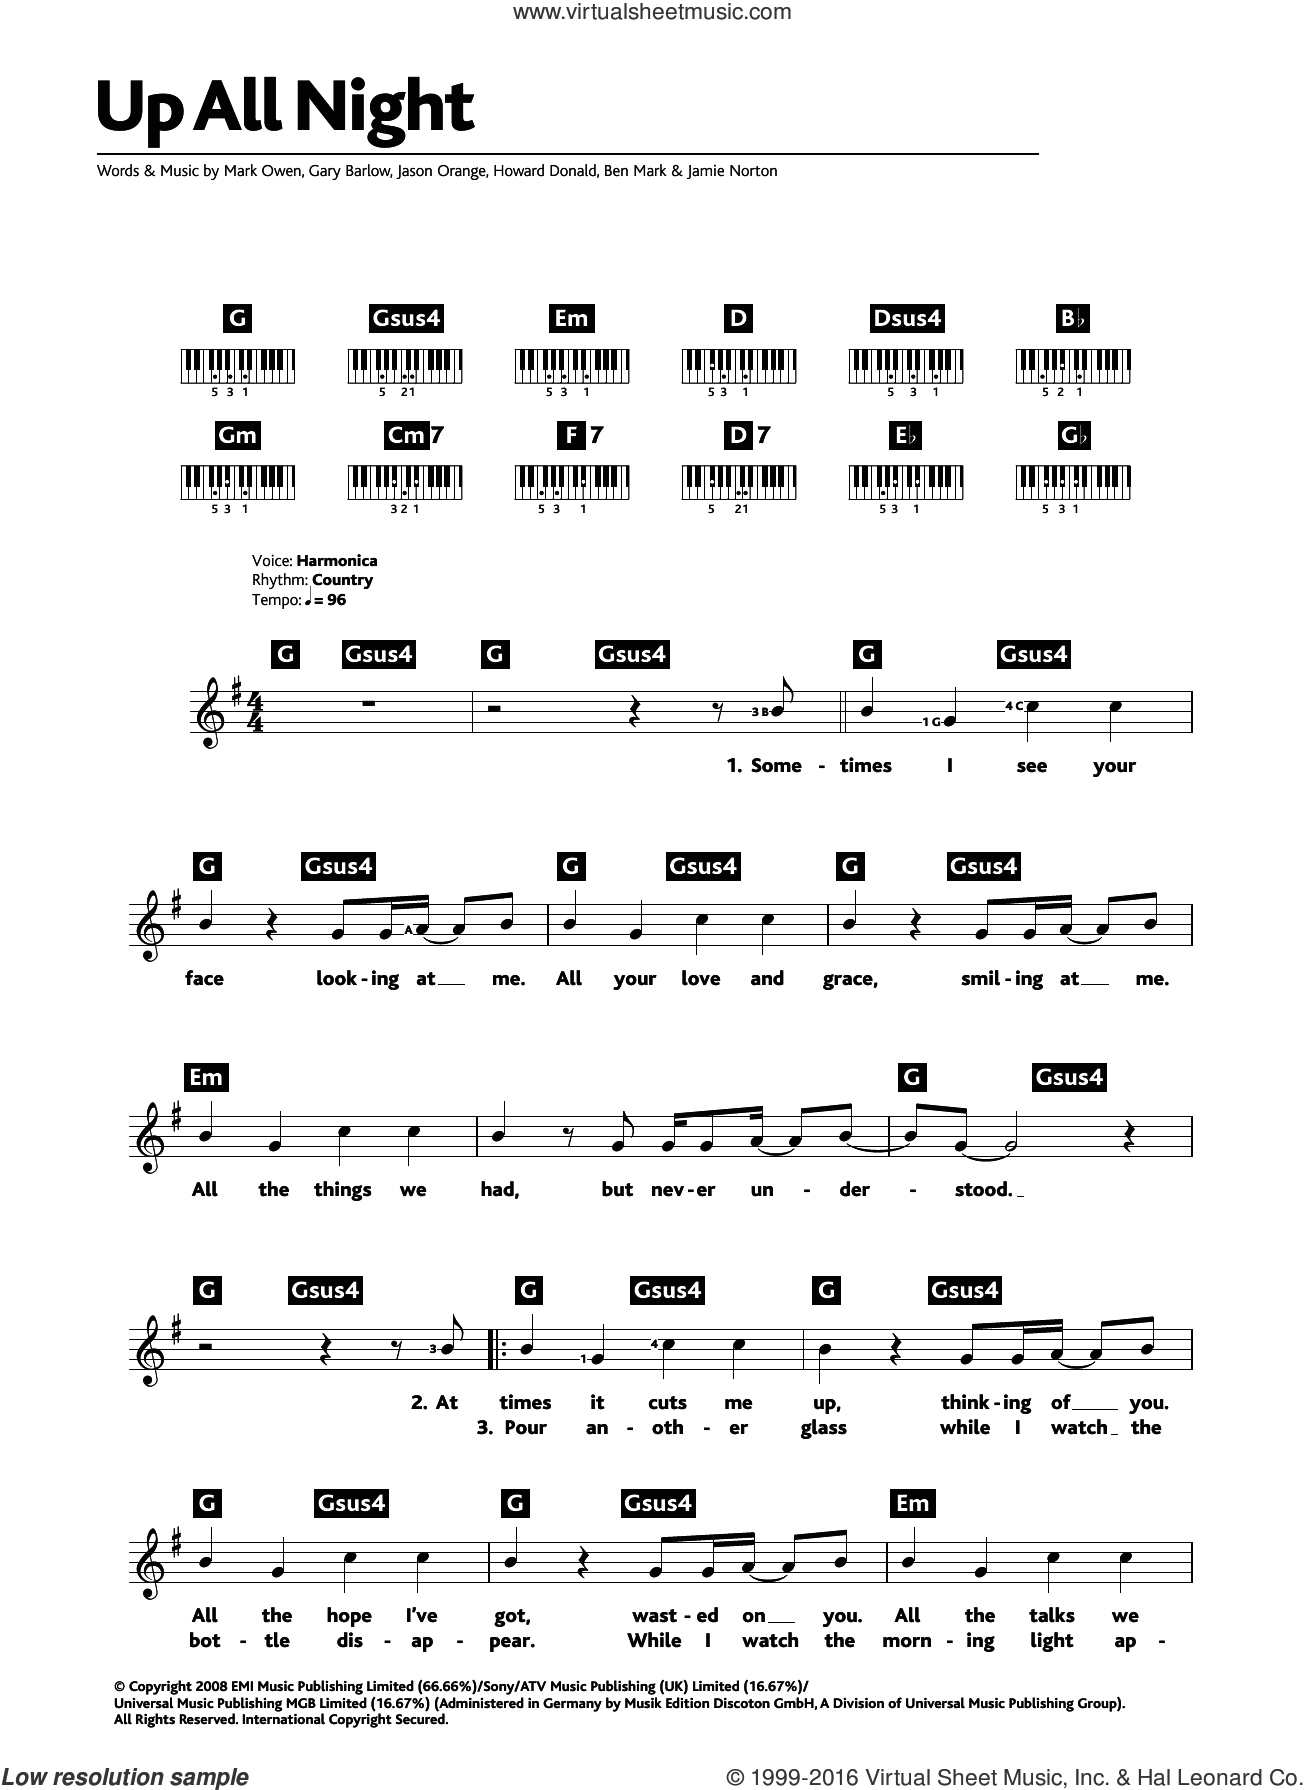 Up All Night sheet music for piano solo (chords, lyrics, melody) by Take That, Gary Barlow and Mark Owen. Score Image Preview.